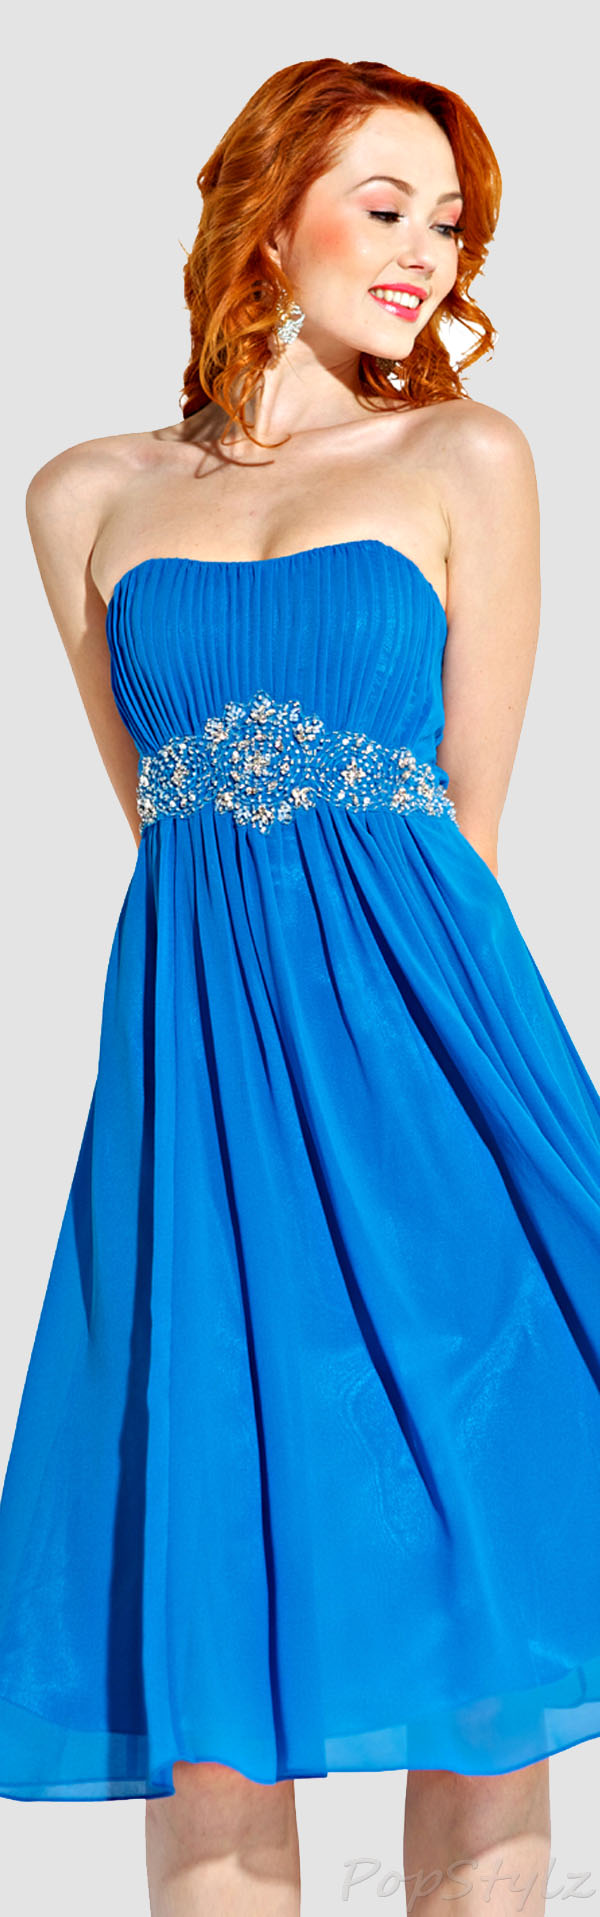 PacificPlex Chiffon Goddess Gown